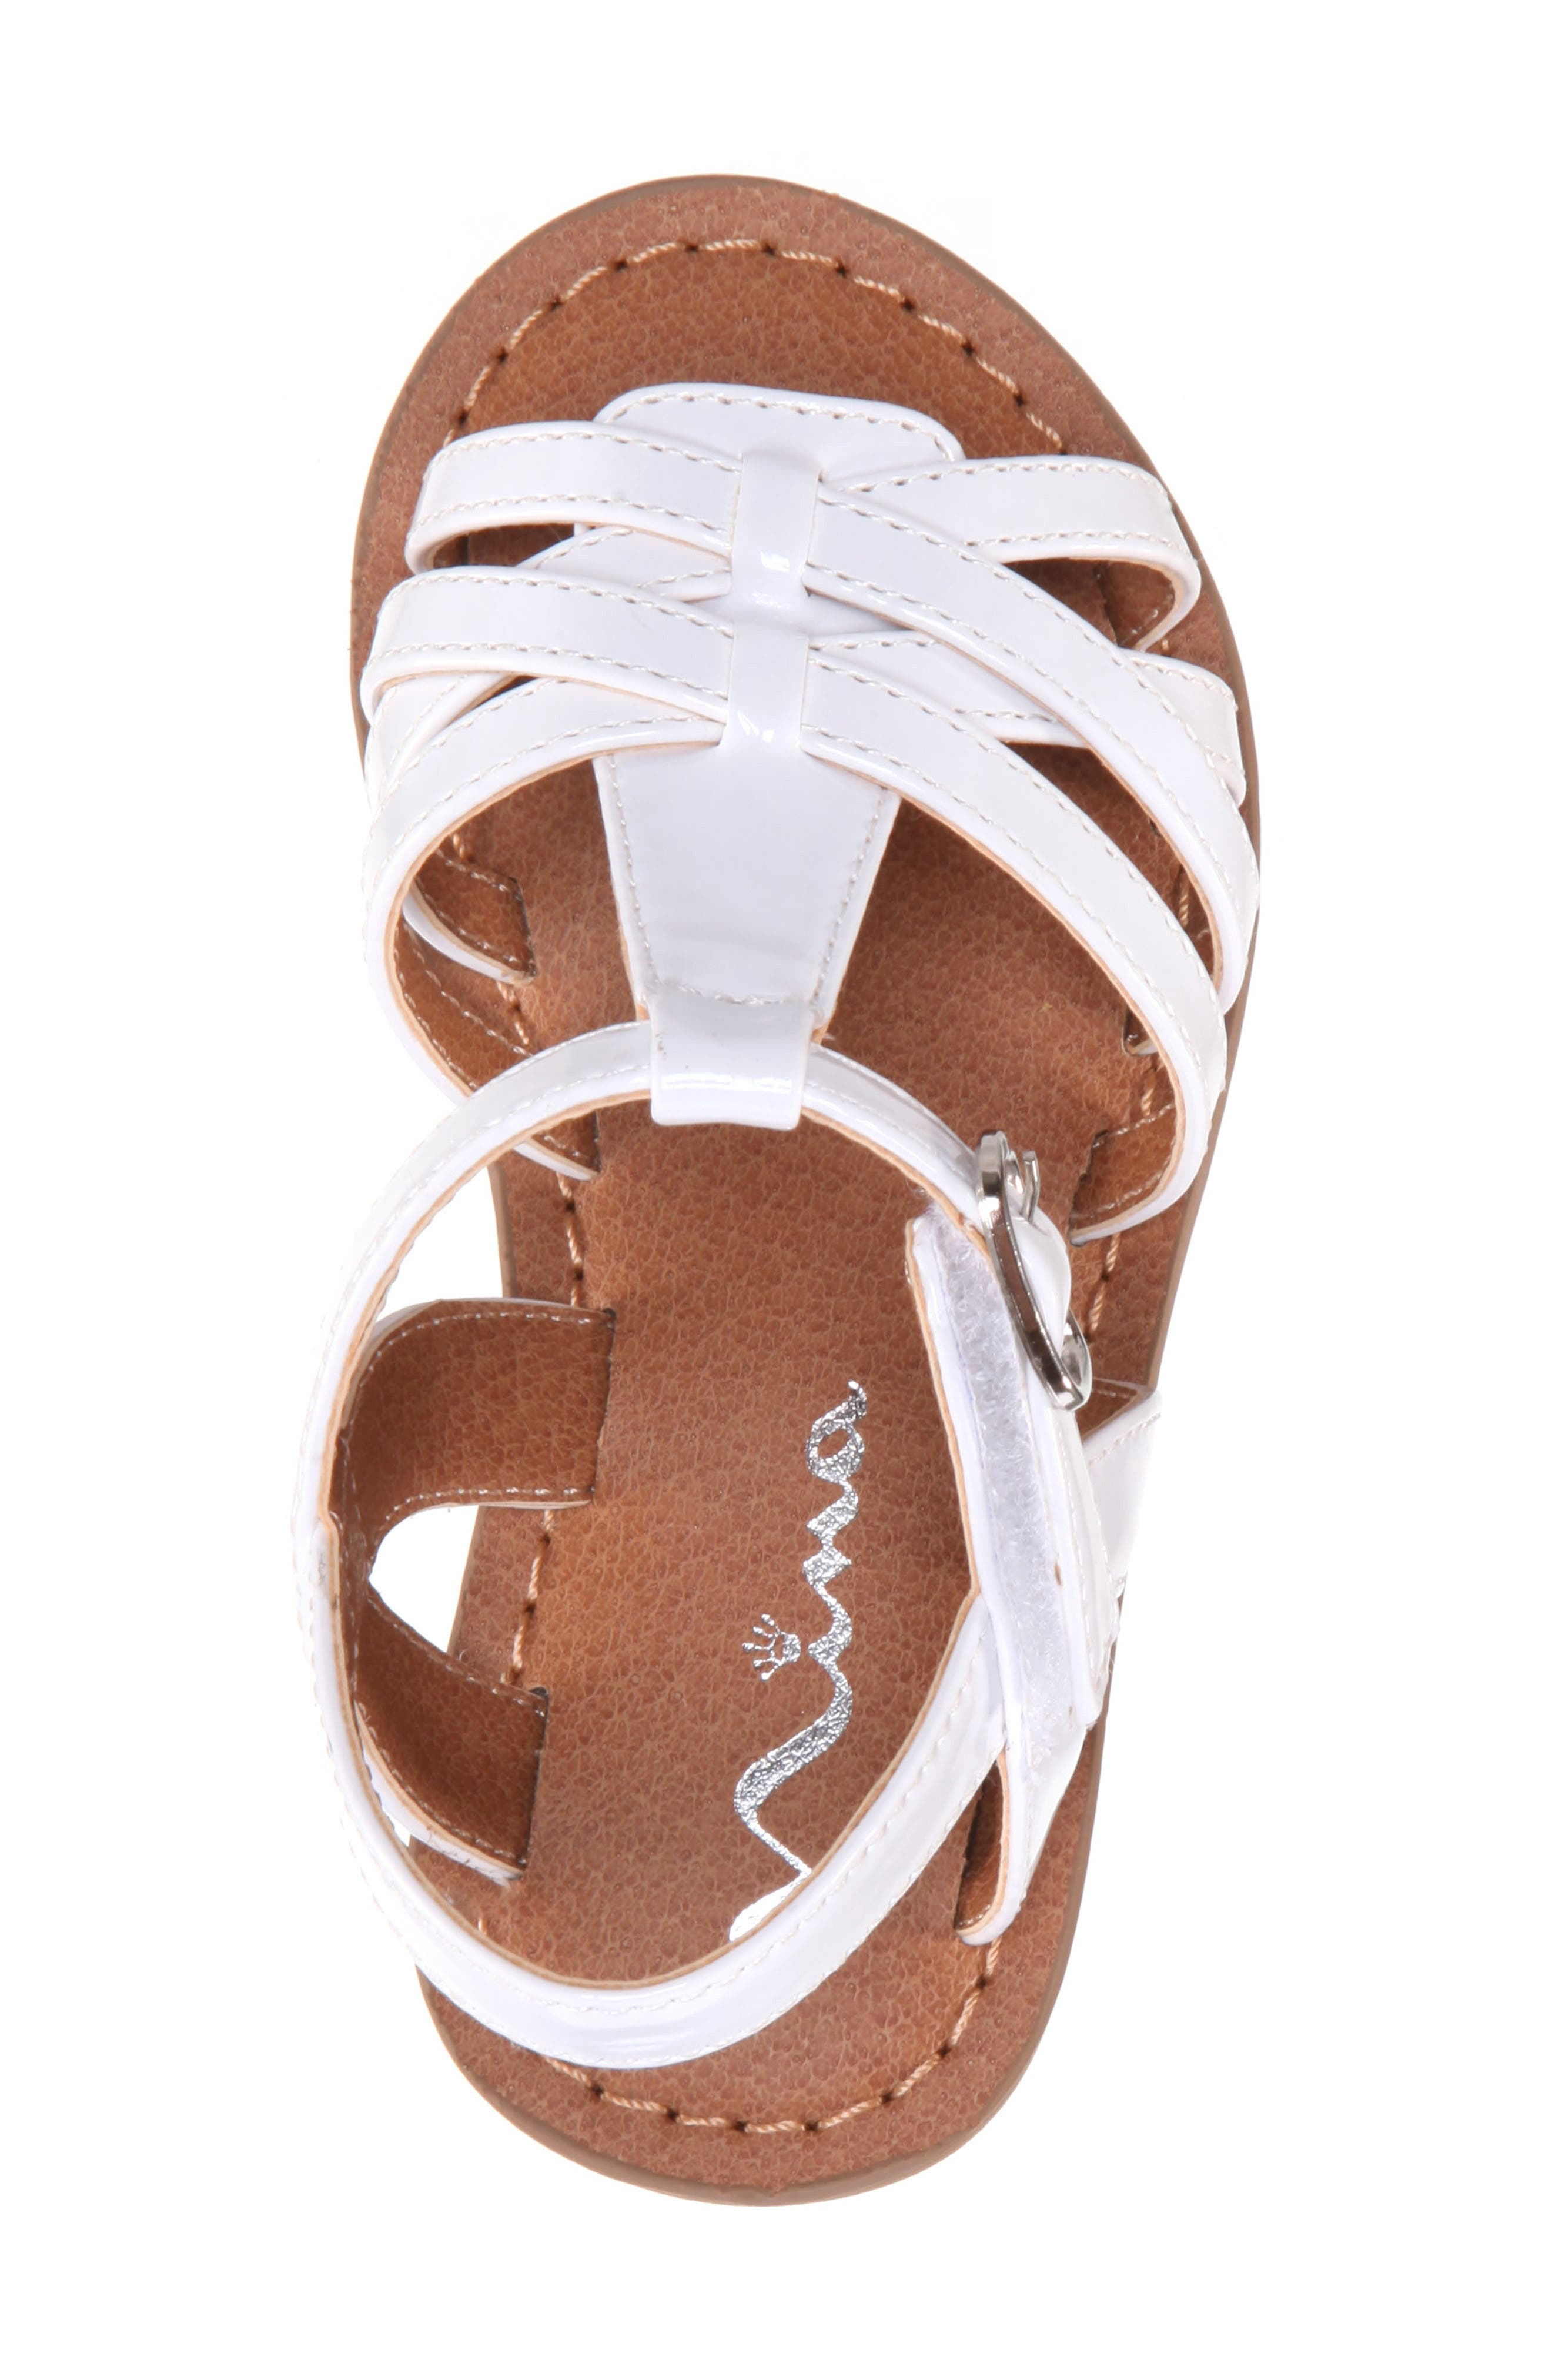 Thereasa Ankle Strap Sandal,                             Alternate thumbnail 5, color,                             White Patent